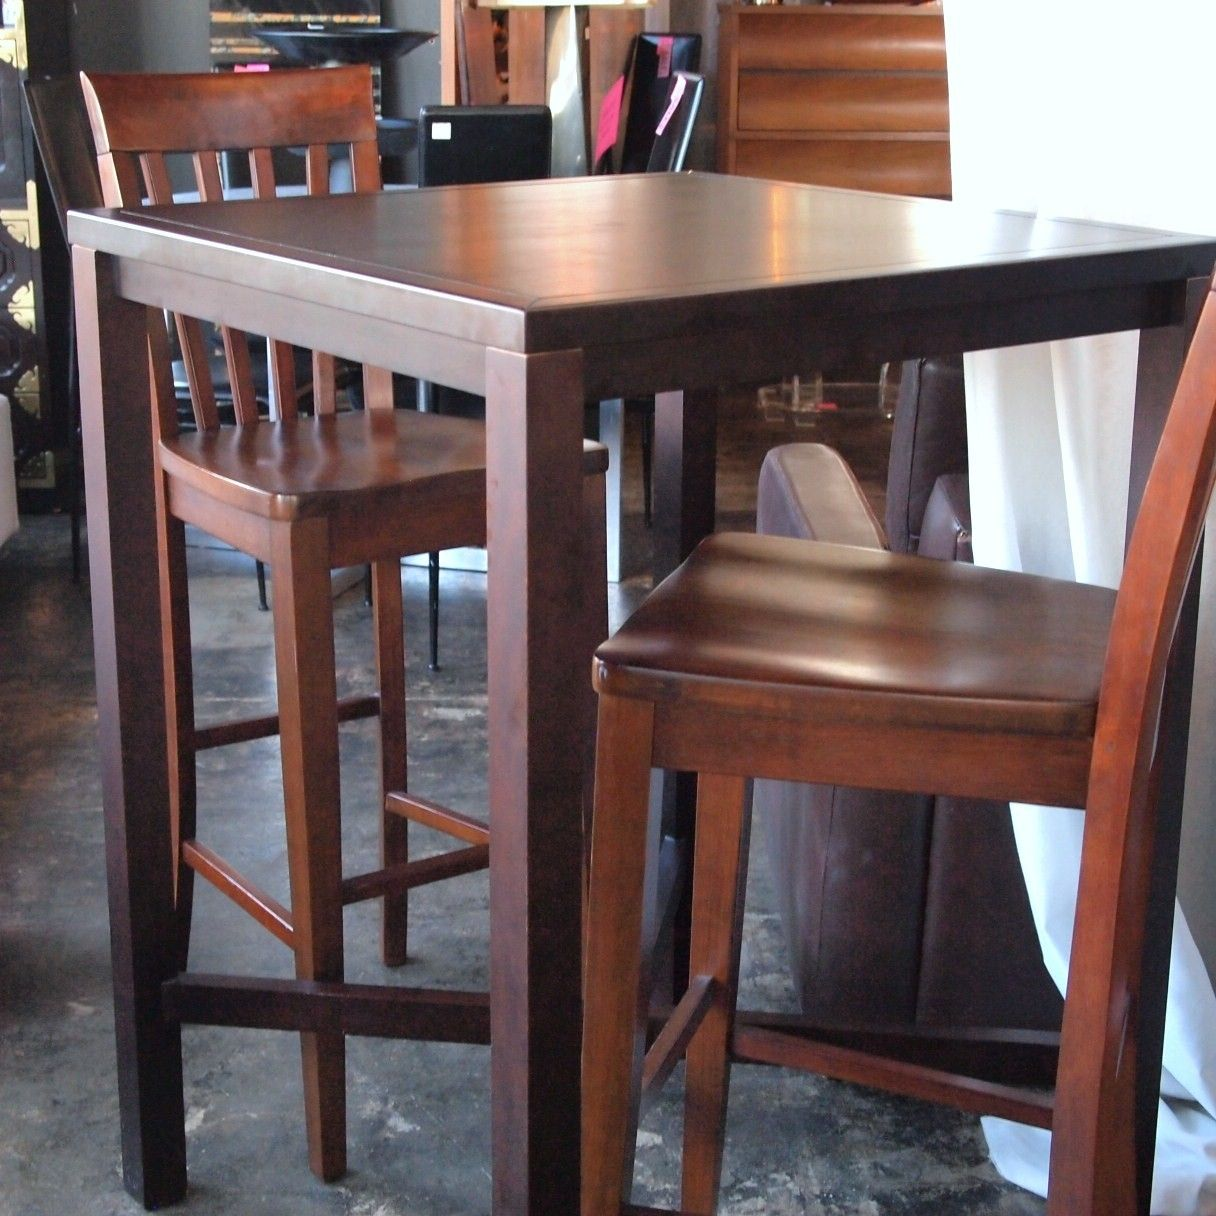 Bar Style Wood Table With 2 Chairs